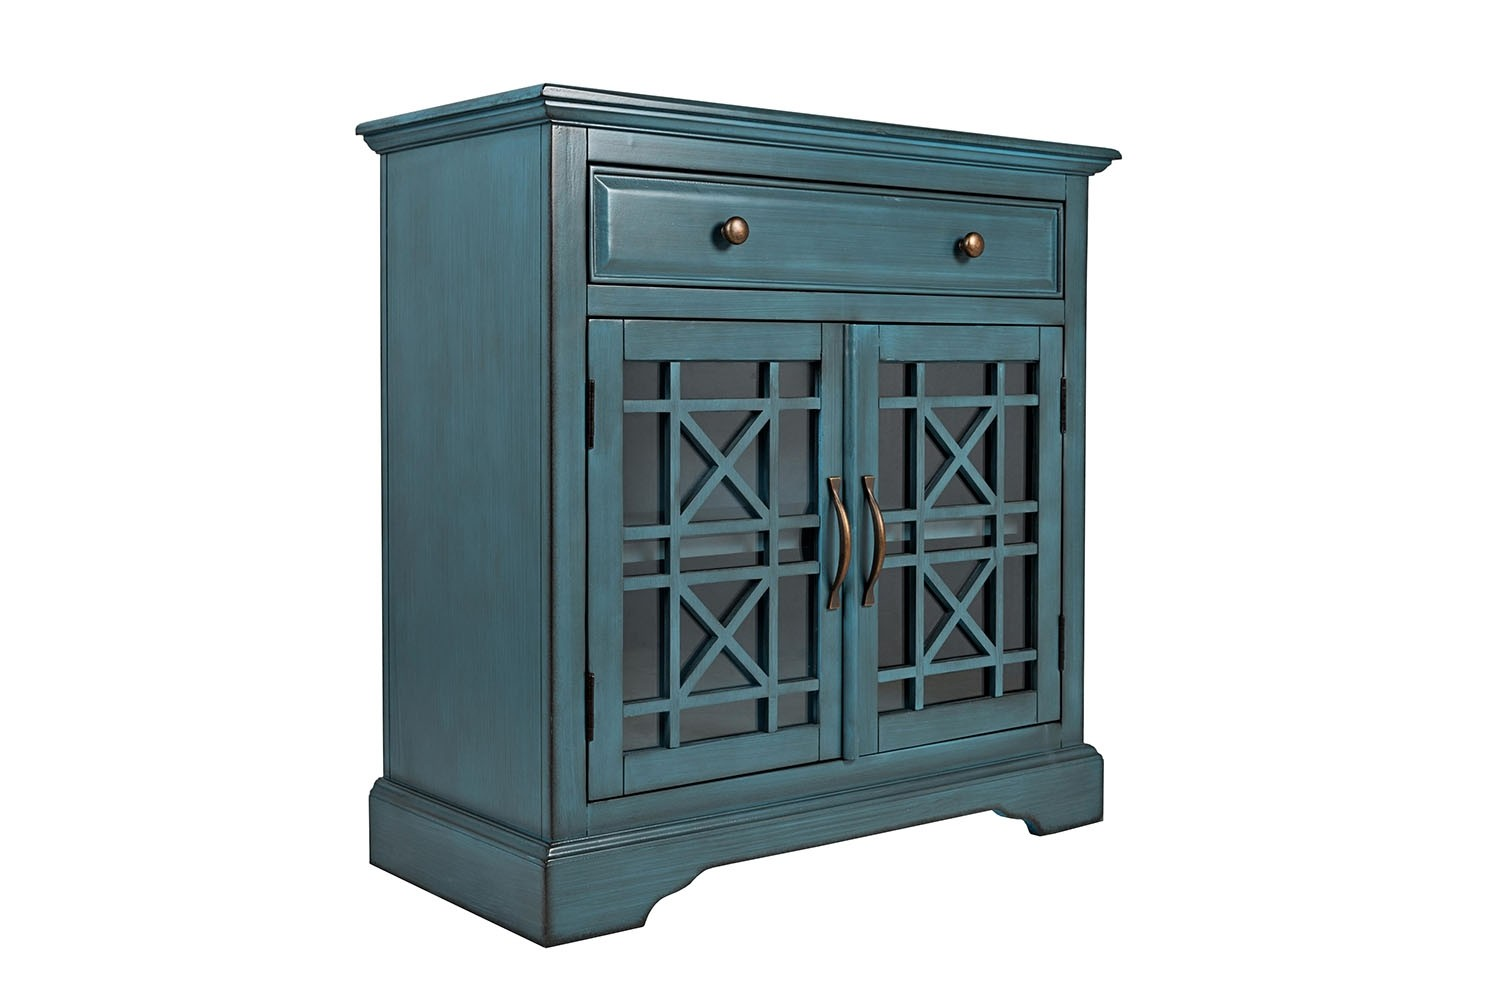 Skyy Small Media Cabinet In Blue Image 1